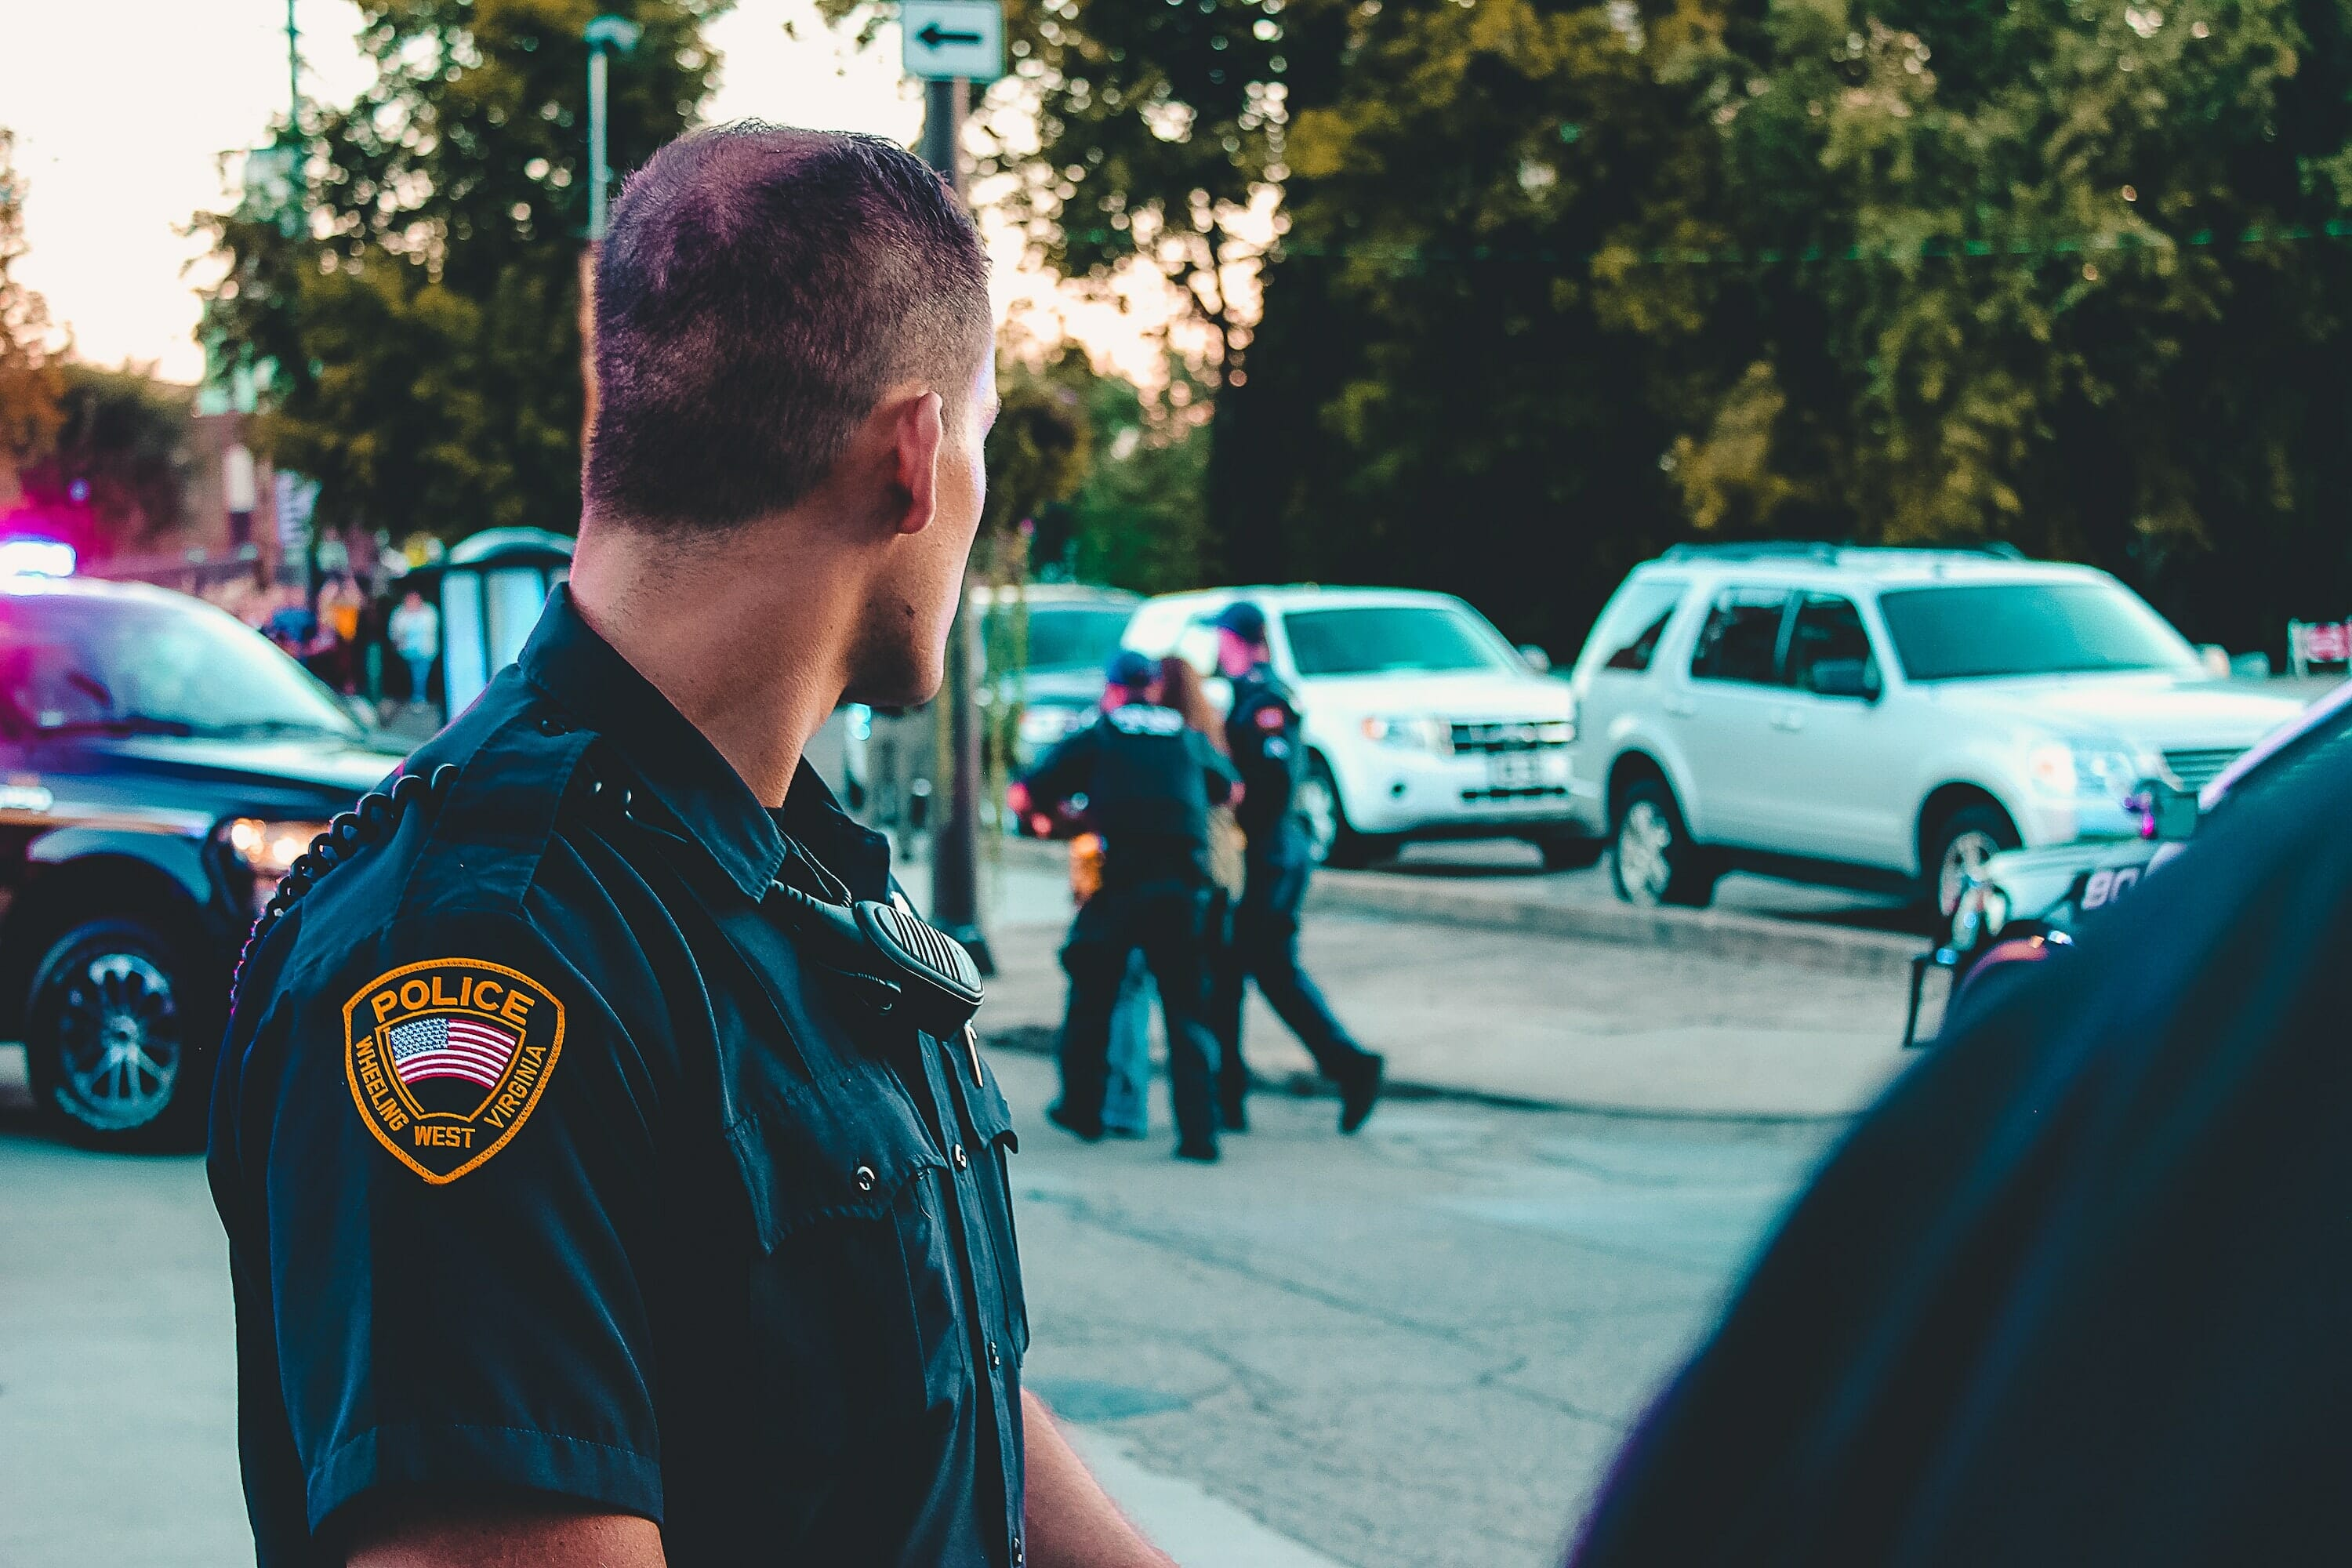 A police officers looking at an arrest